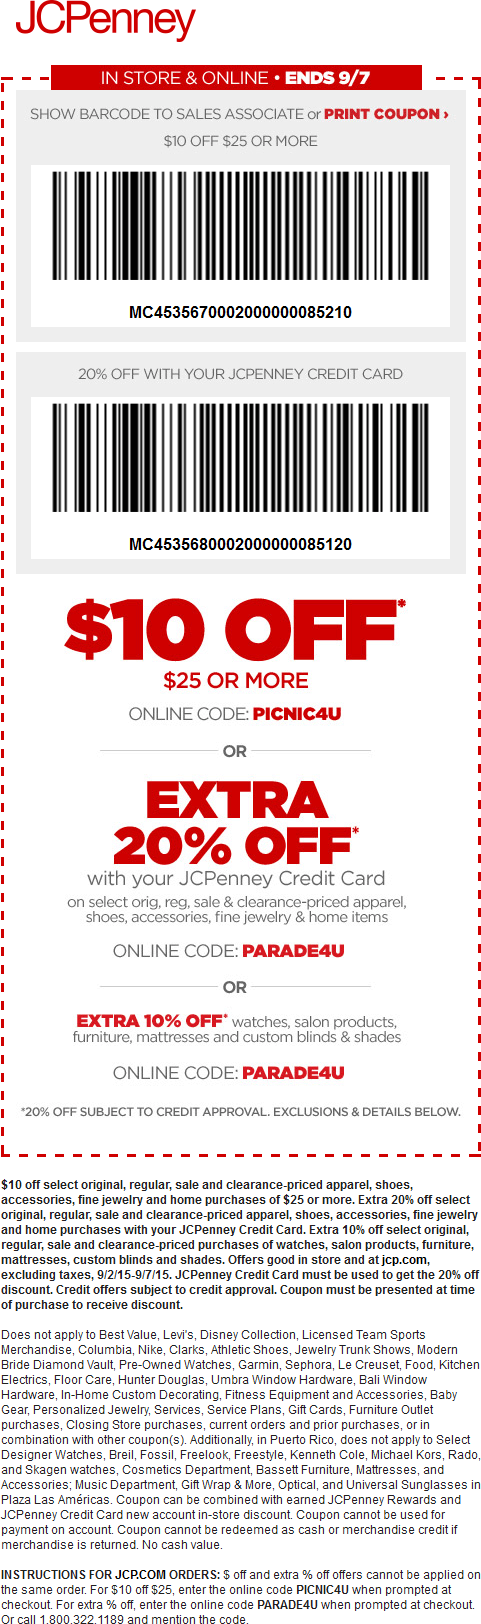 JCPenney Coupon November 2017 $10 off $25 at JCPenney, or online via promo code PICNIC4U